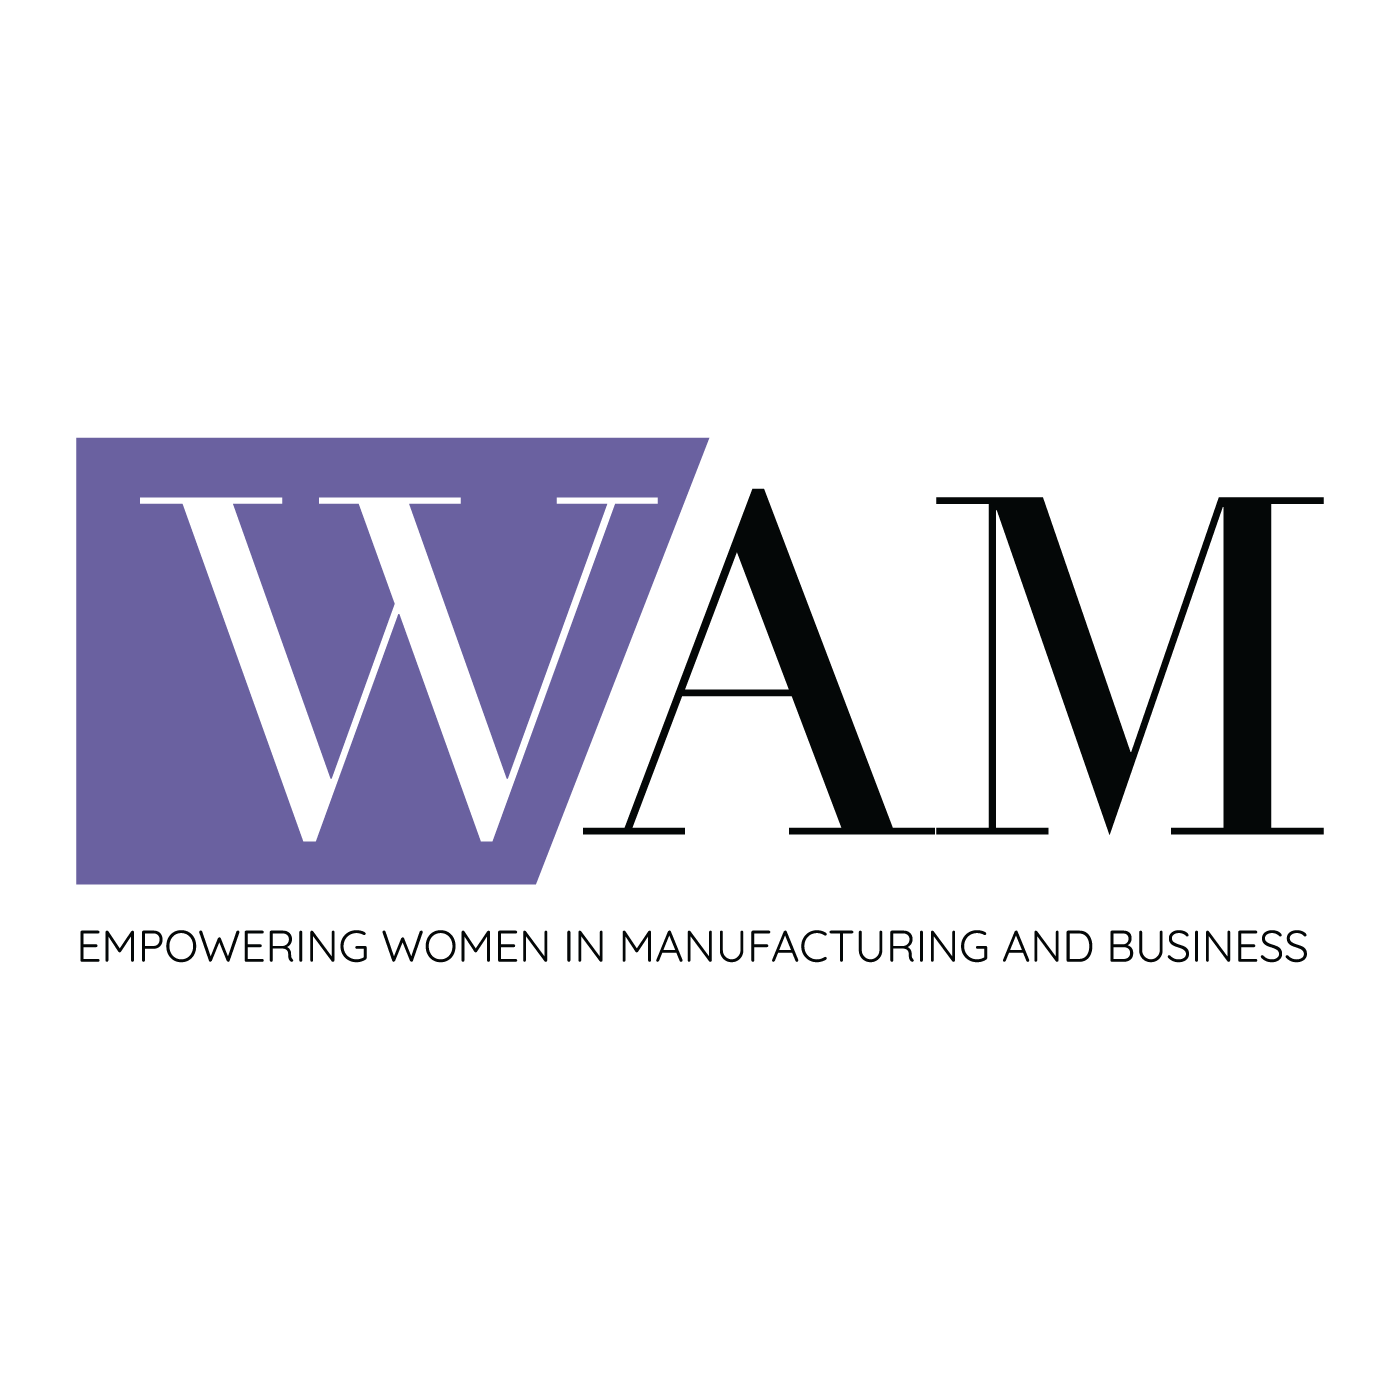 #6 A Role Model for Women in Manufacturing